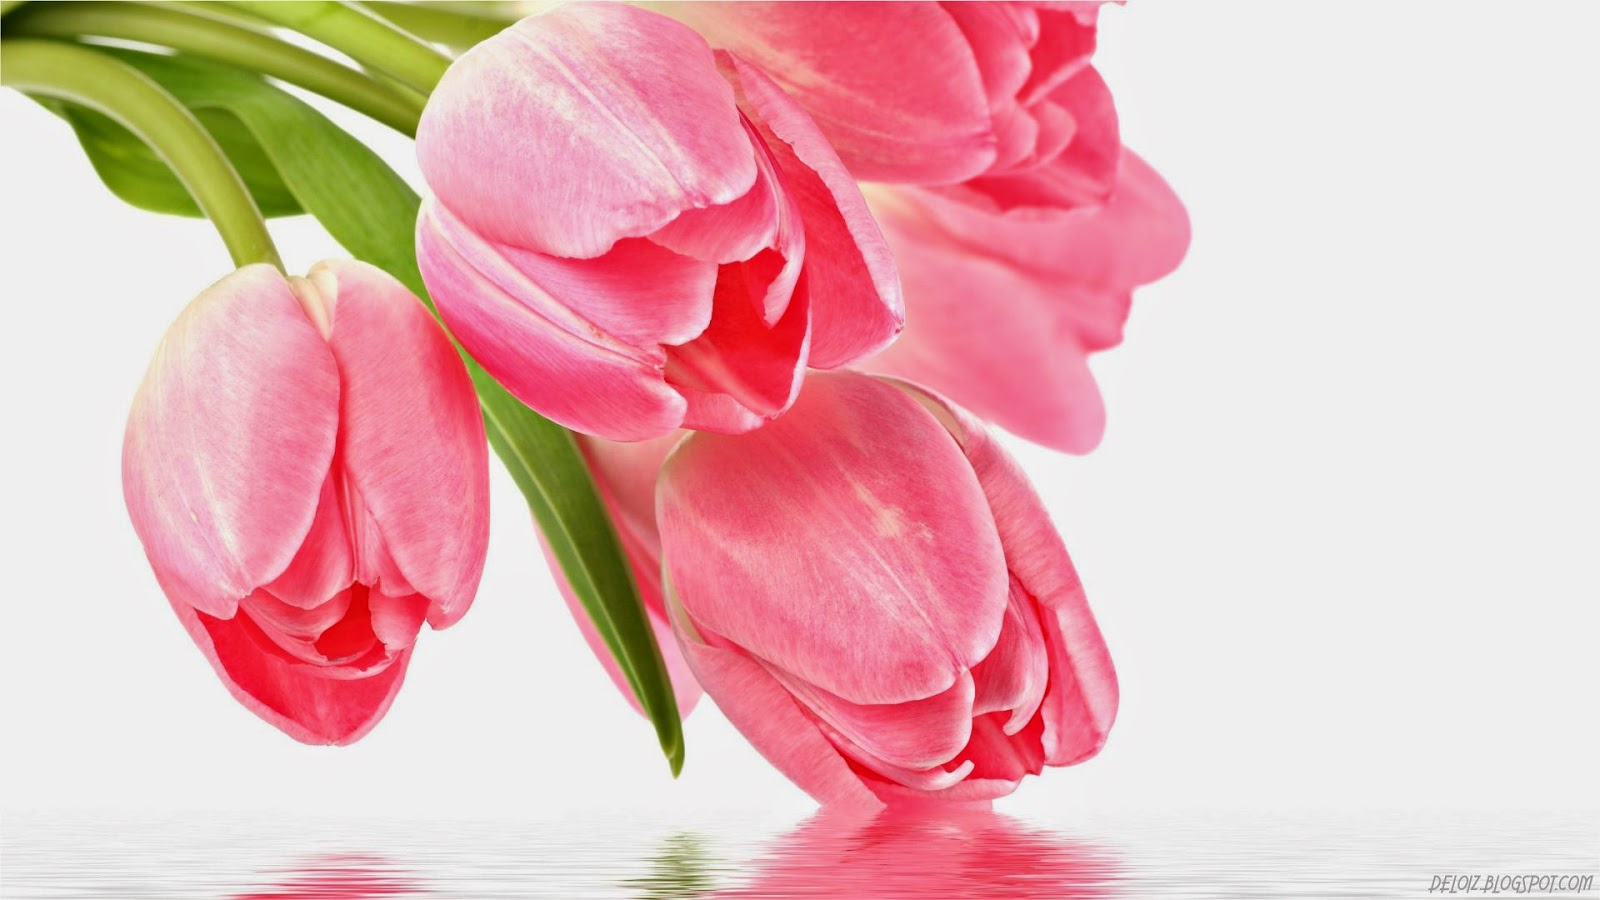 Wallpaper Bunga Tulip Pink Deloiz Wallpaper